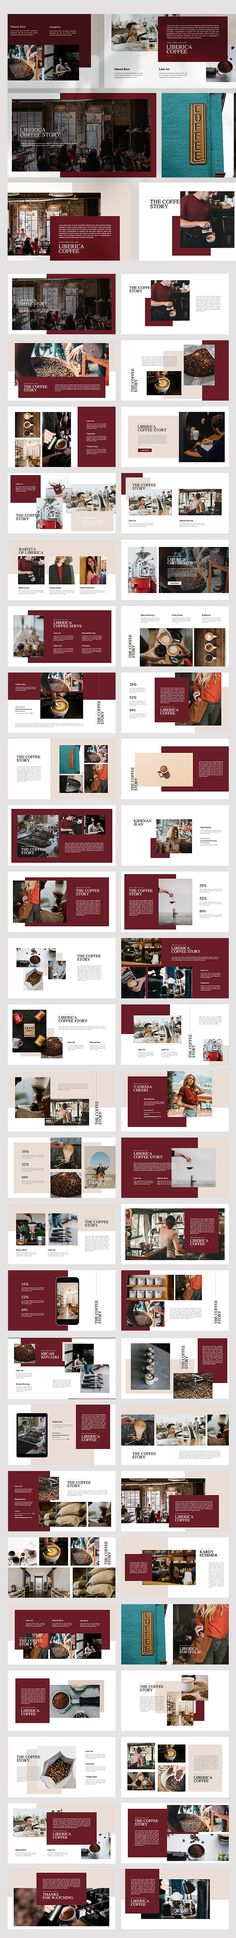 Buy Liberica Coffee Keynote Template by eunavia on GraphicRiver. Features 50 Unique Slides PPTX Files Build With Slide Master All Shape Are Editable Image Plcaeholder Ready HD W. Powerpoint Presentation Templates, Keynote Template, Creative Powerpoint, Coffee Presentation, File Image, Corporate Flyer, Print Templates, Colour Images, Color Change